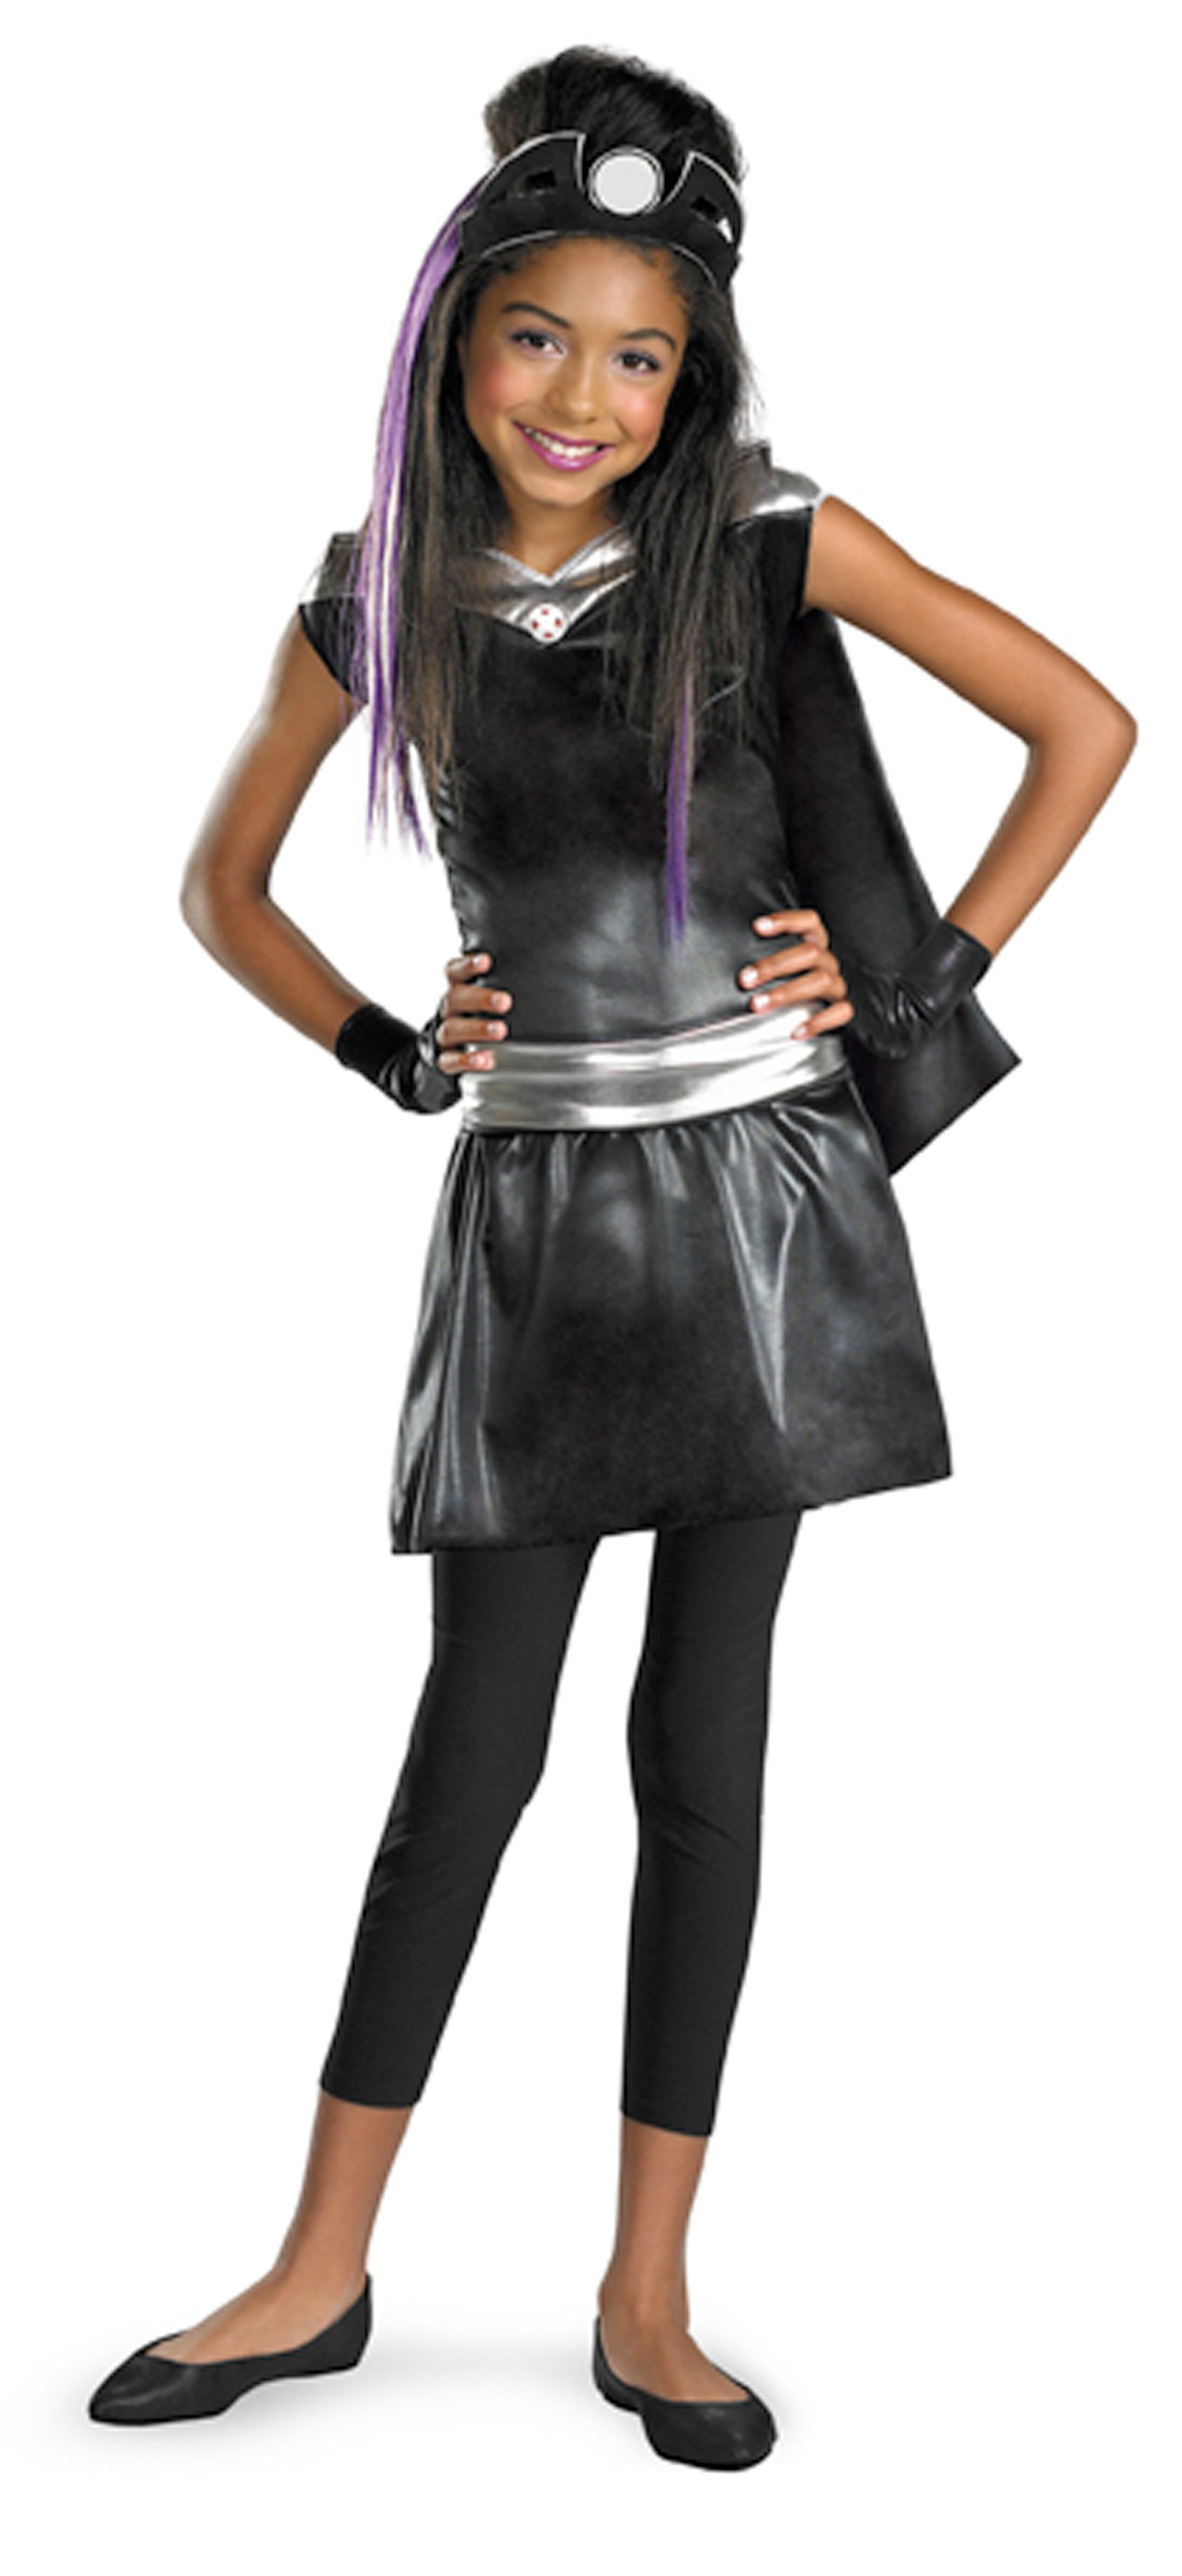 X-Men Storm Child/Tween Costume